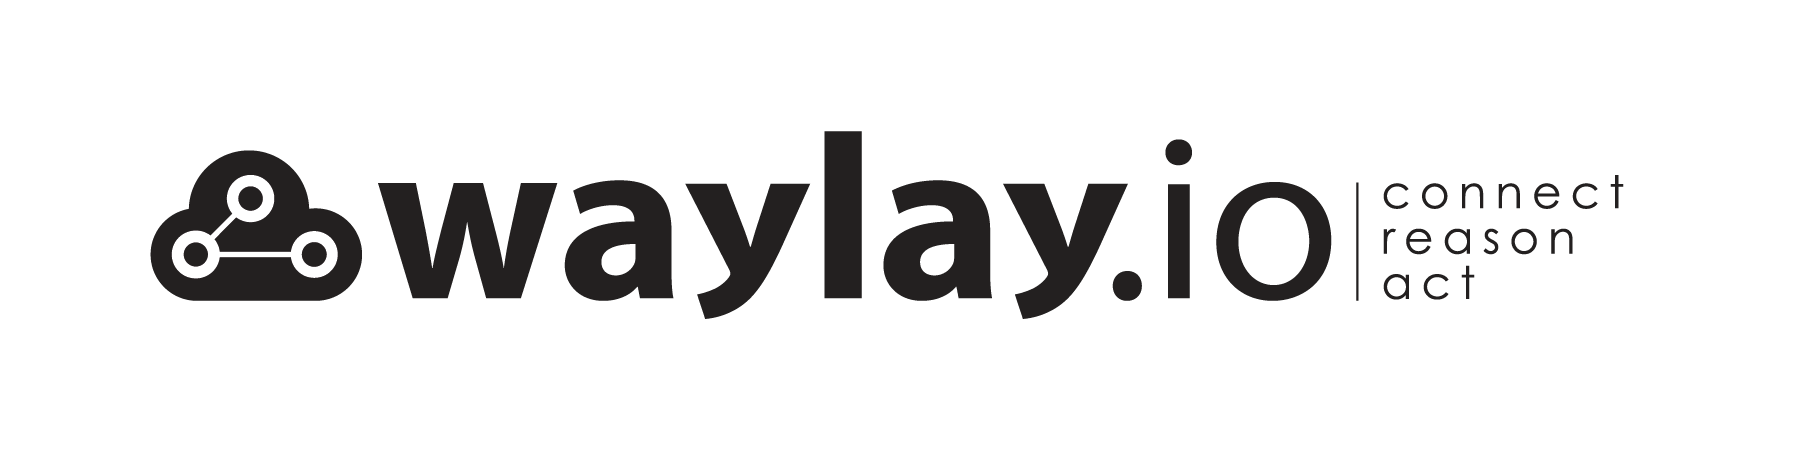 waylay-logo-tagline-black-transparent